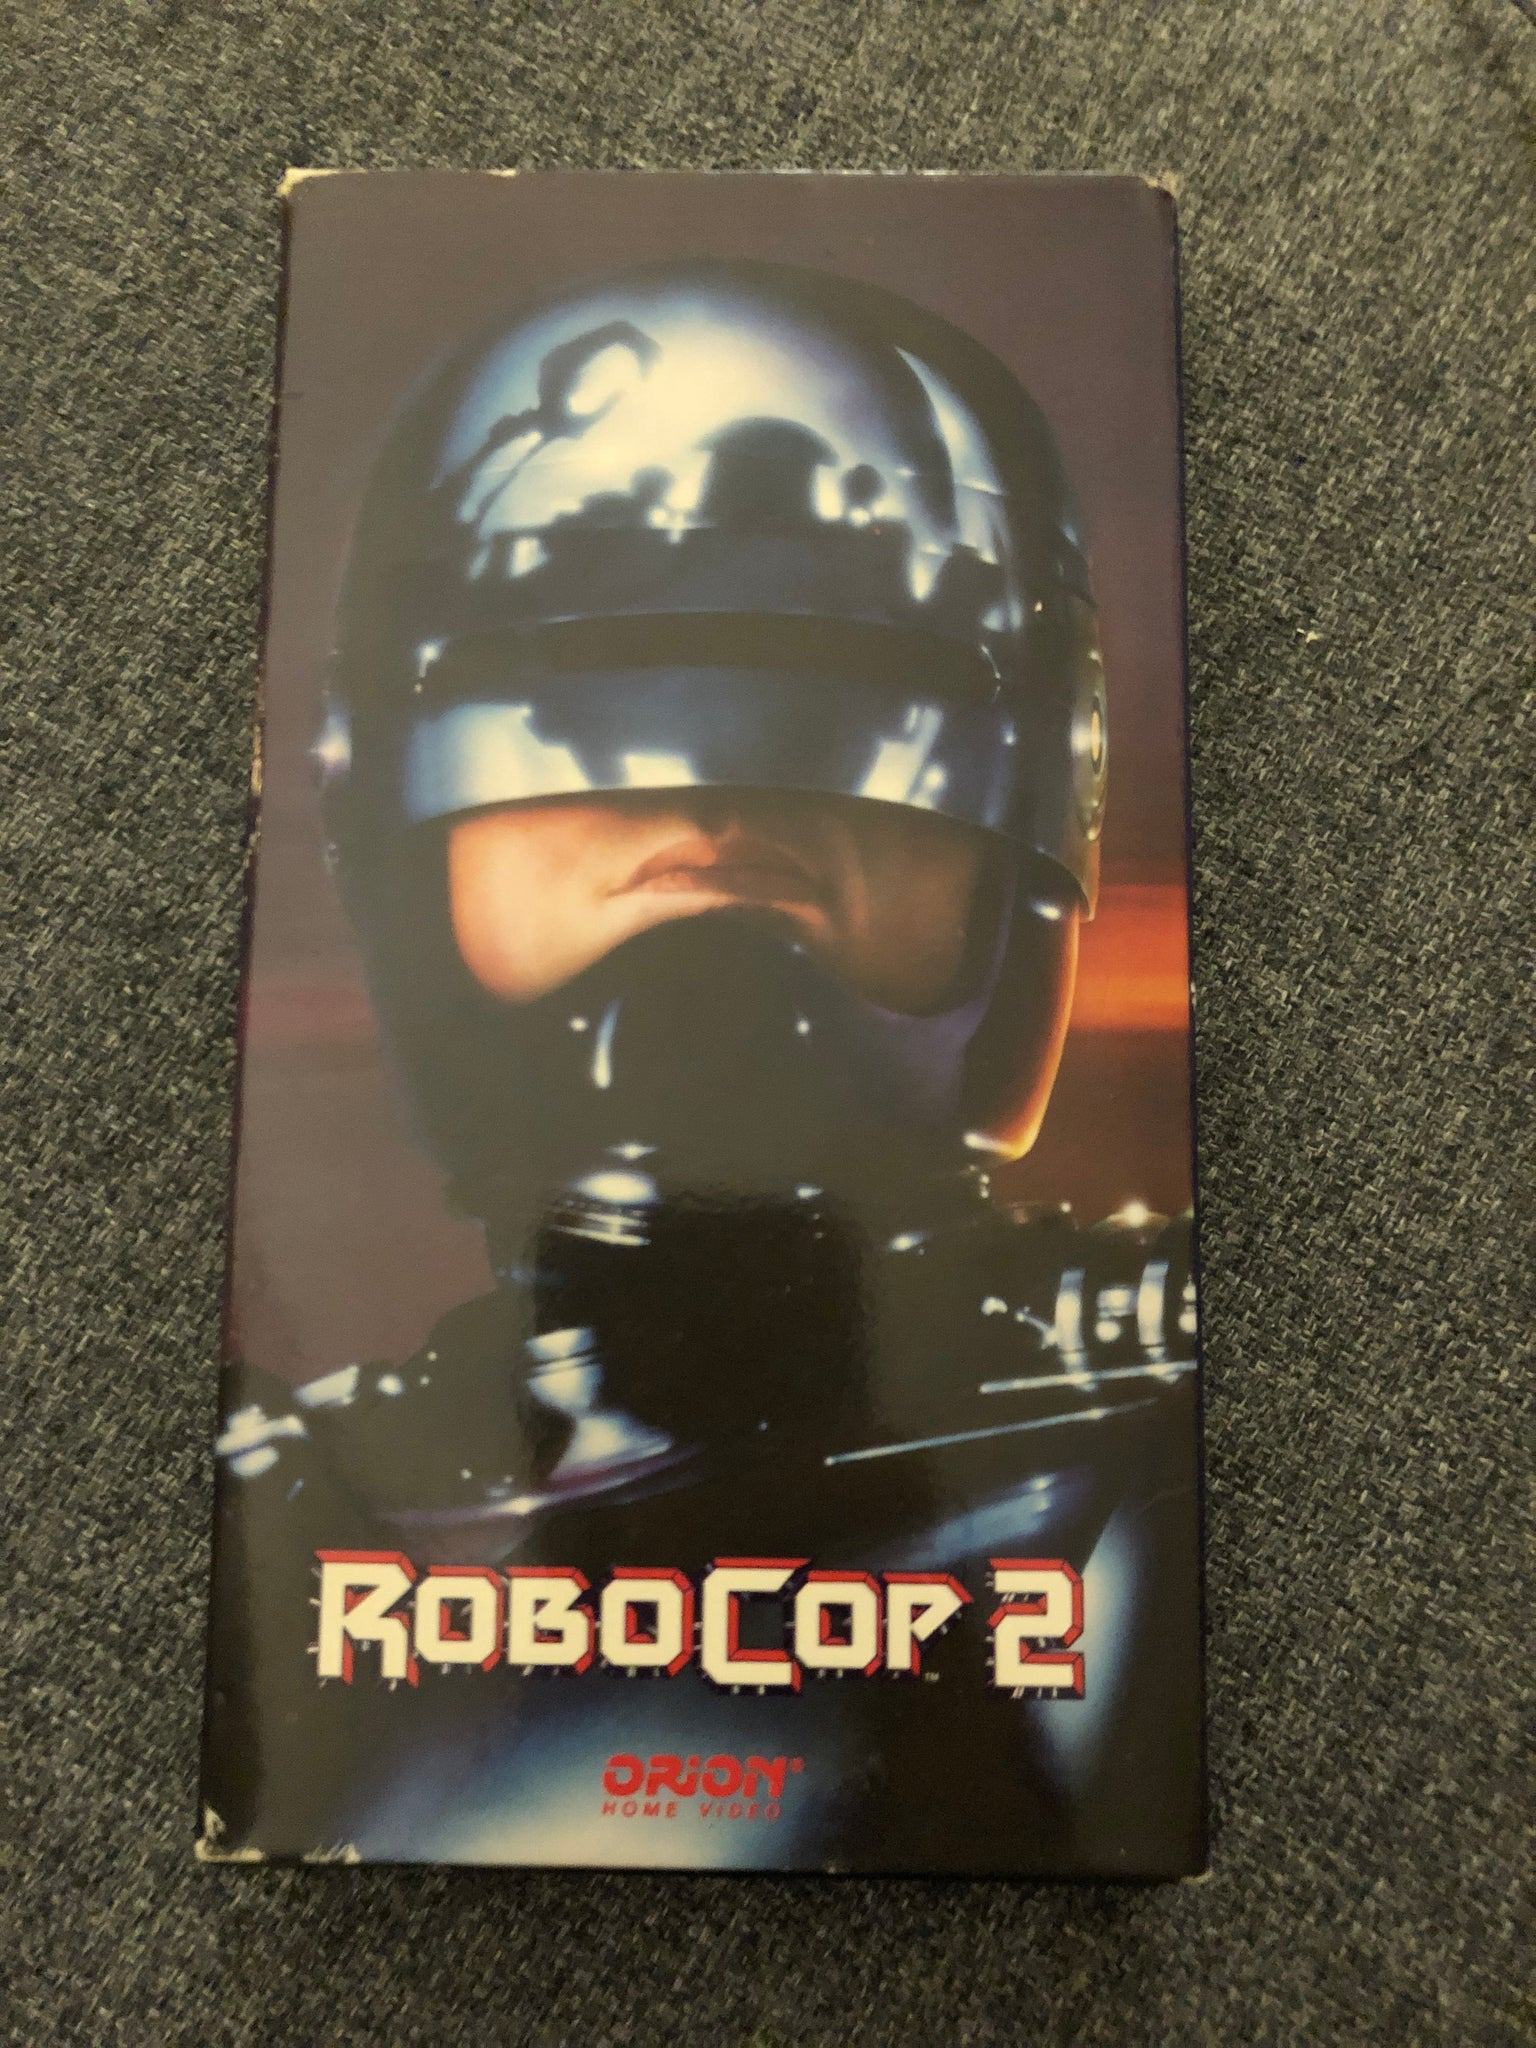 Robocop 2 - Orion